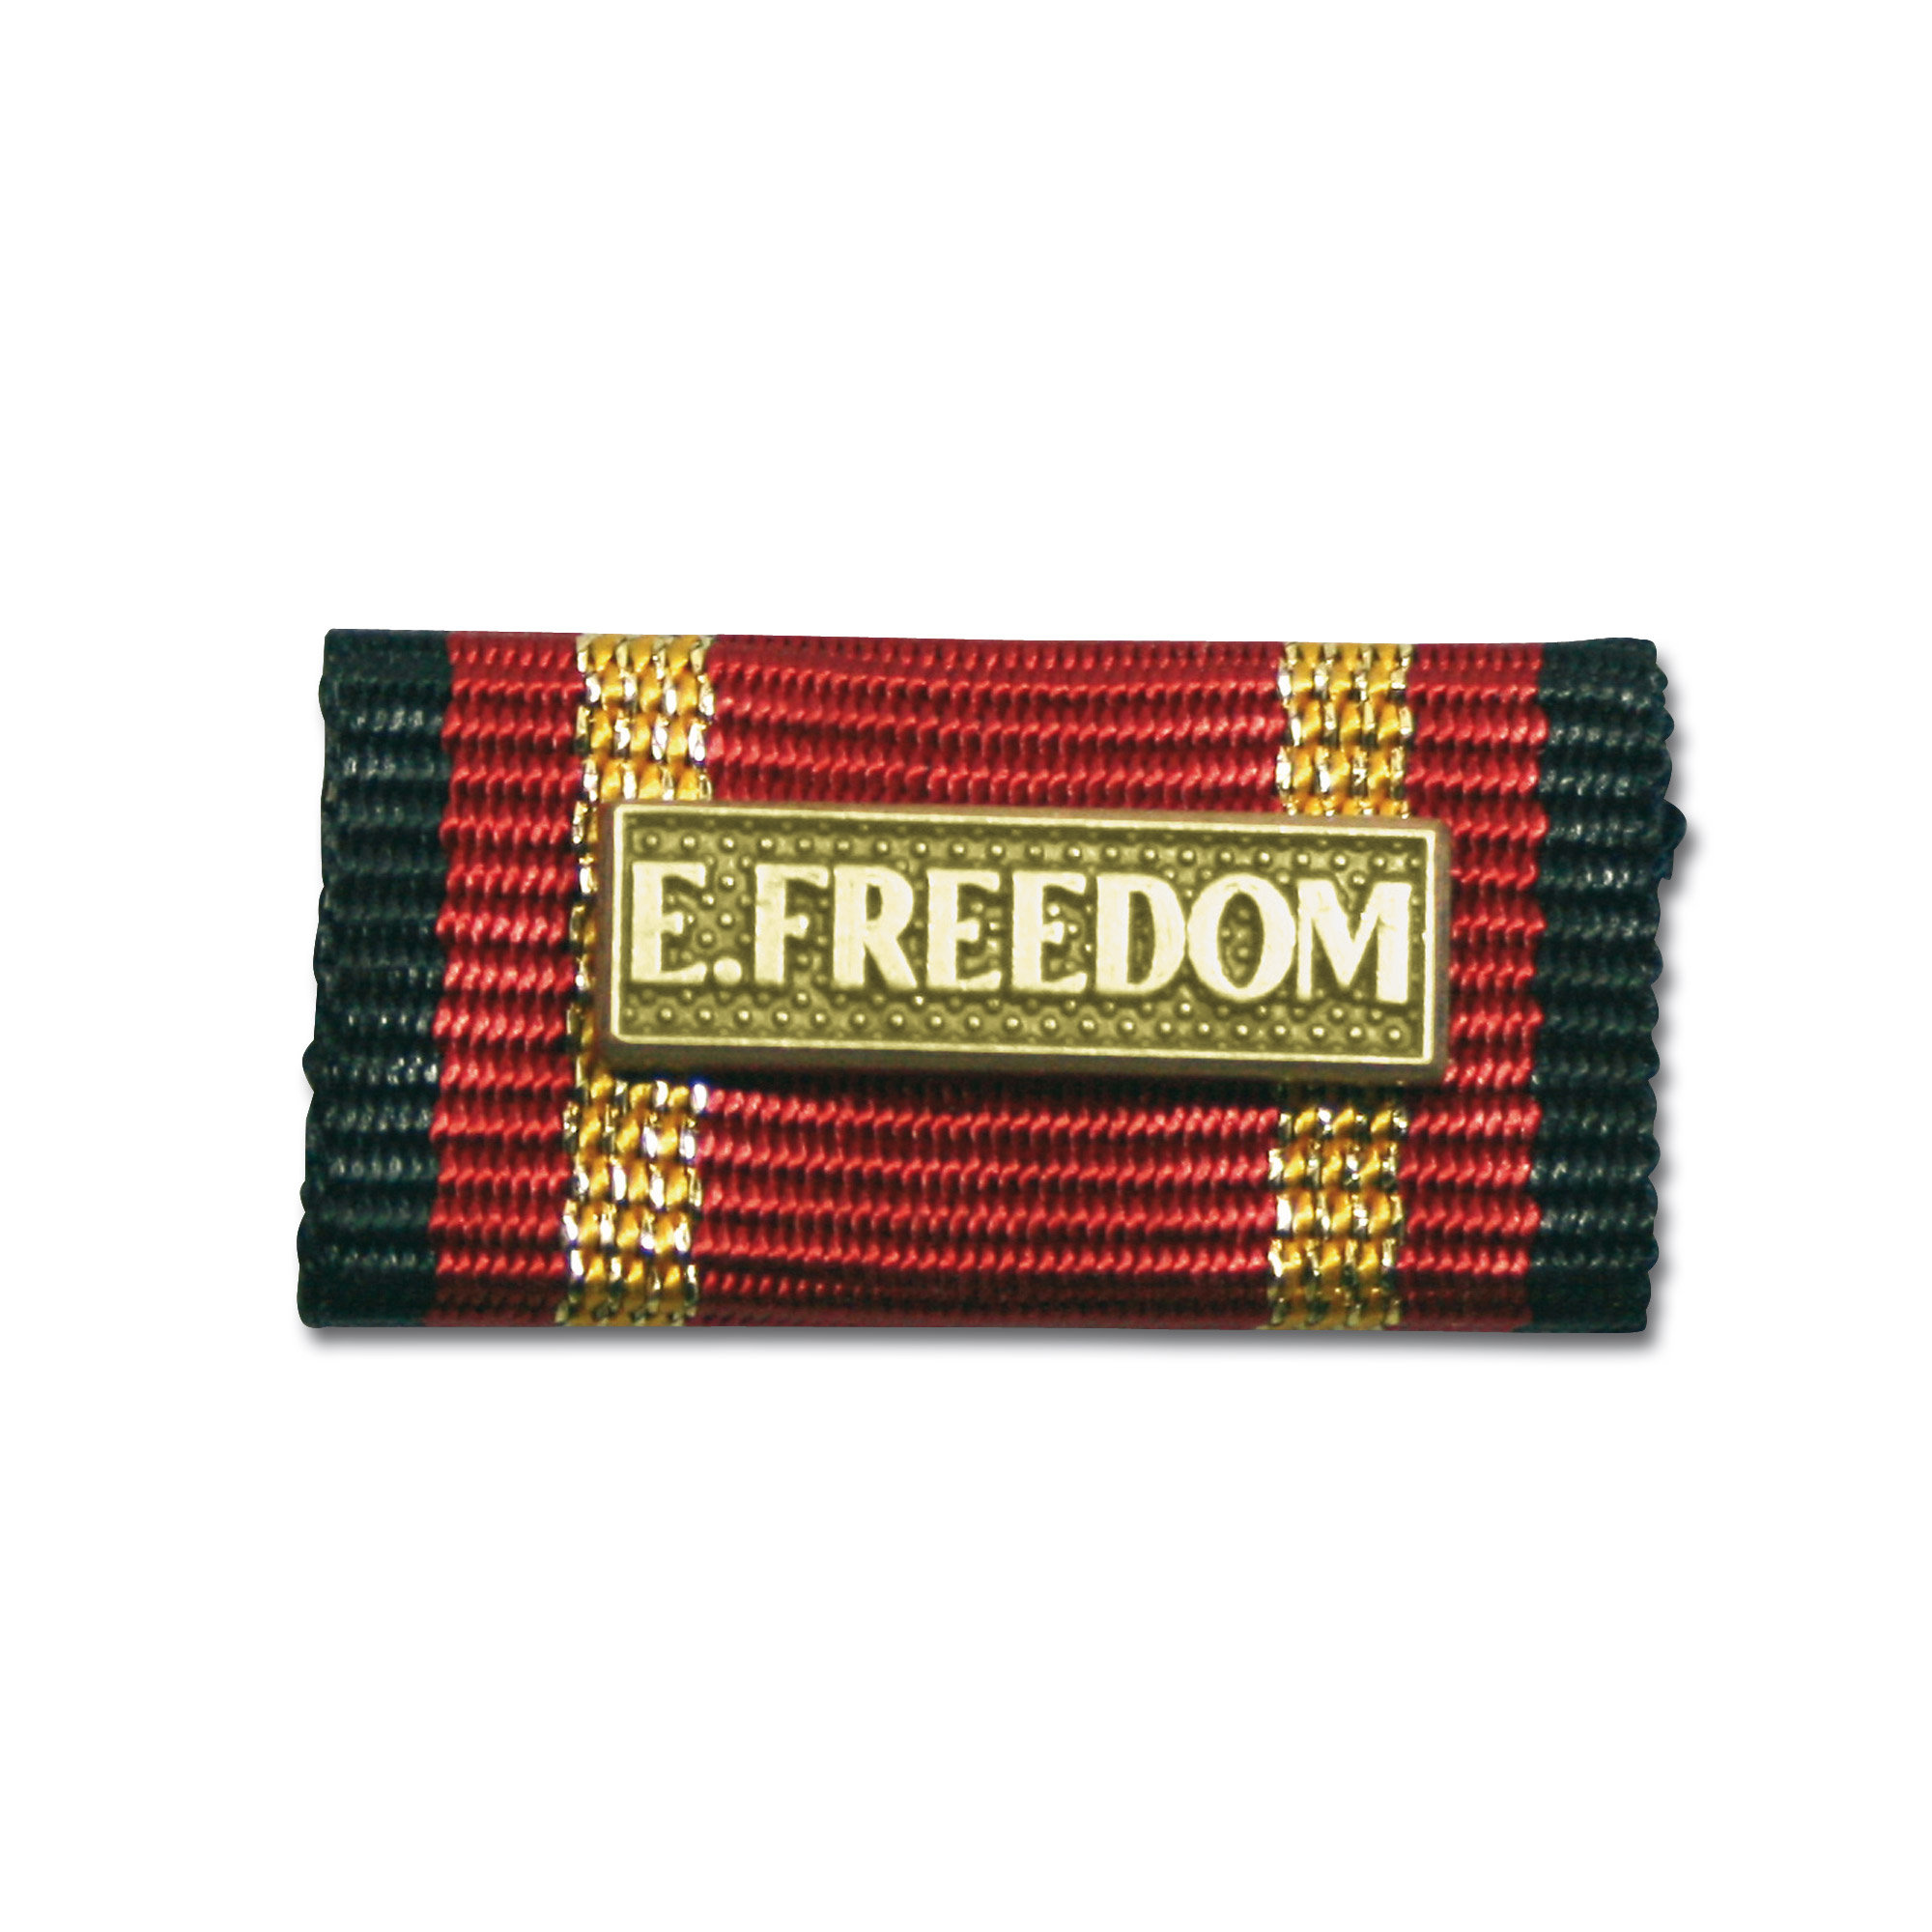 Service Ribbon Deployment Operation Enduring Freedom gold